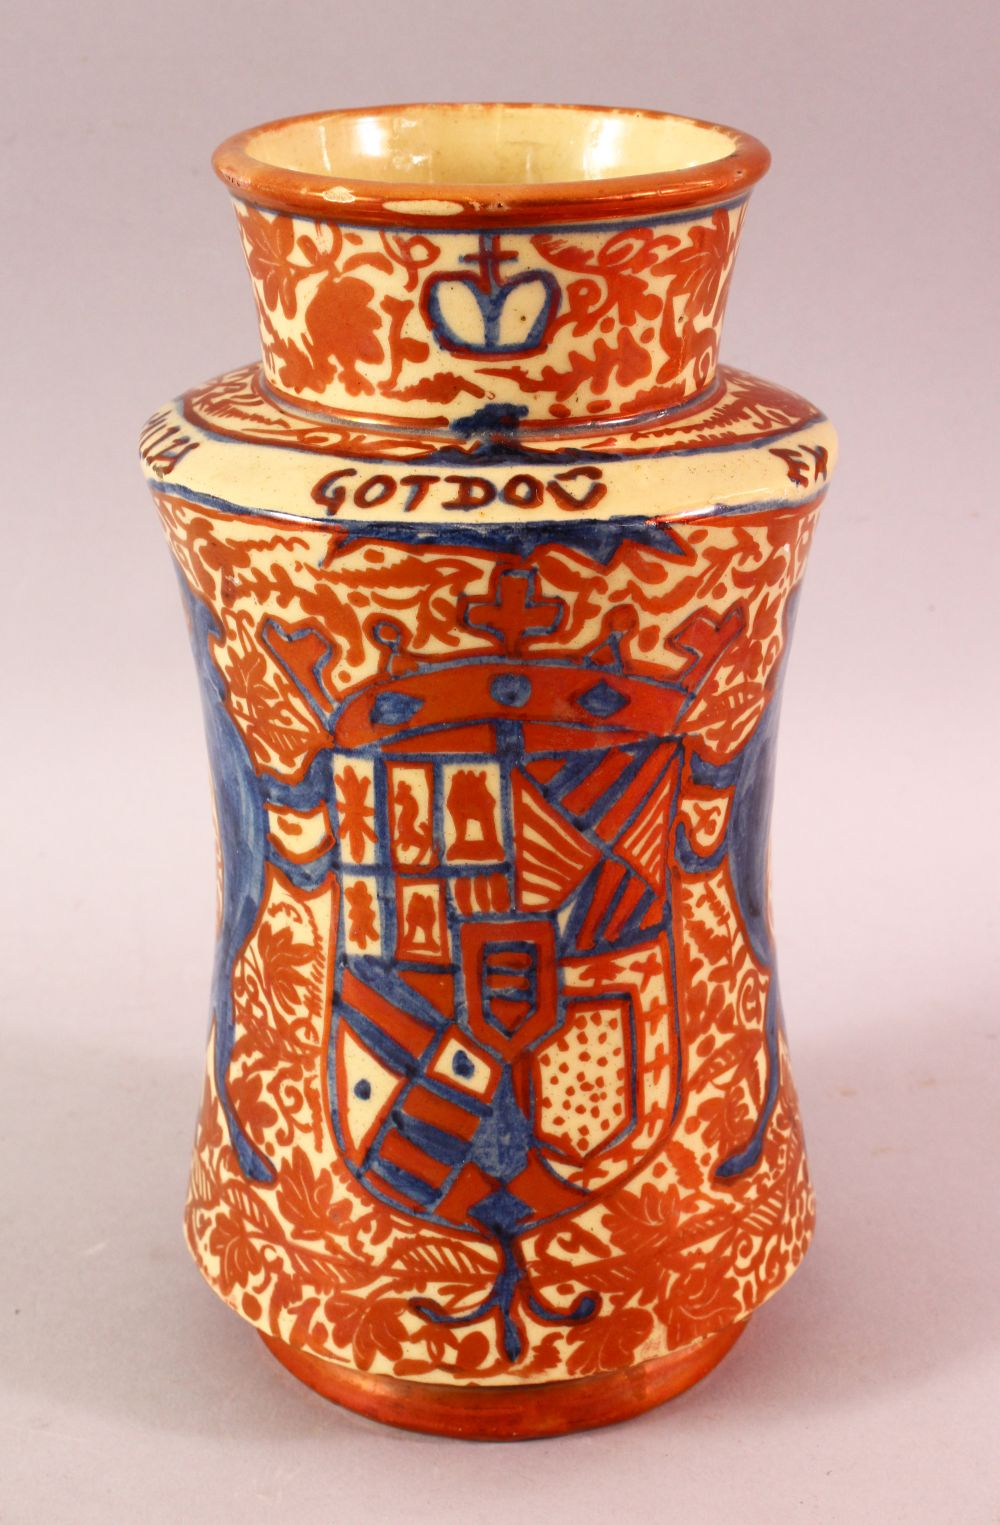 A SPANISH MORESQUE LUSTRE POTTERY MEDICINE JAR, decorated with a copper lustre and lion